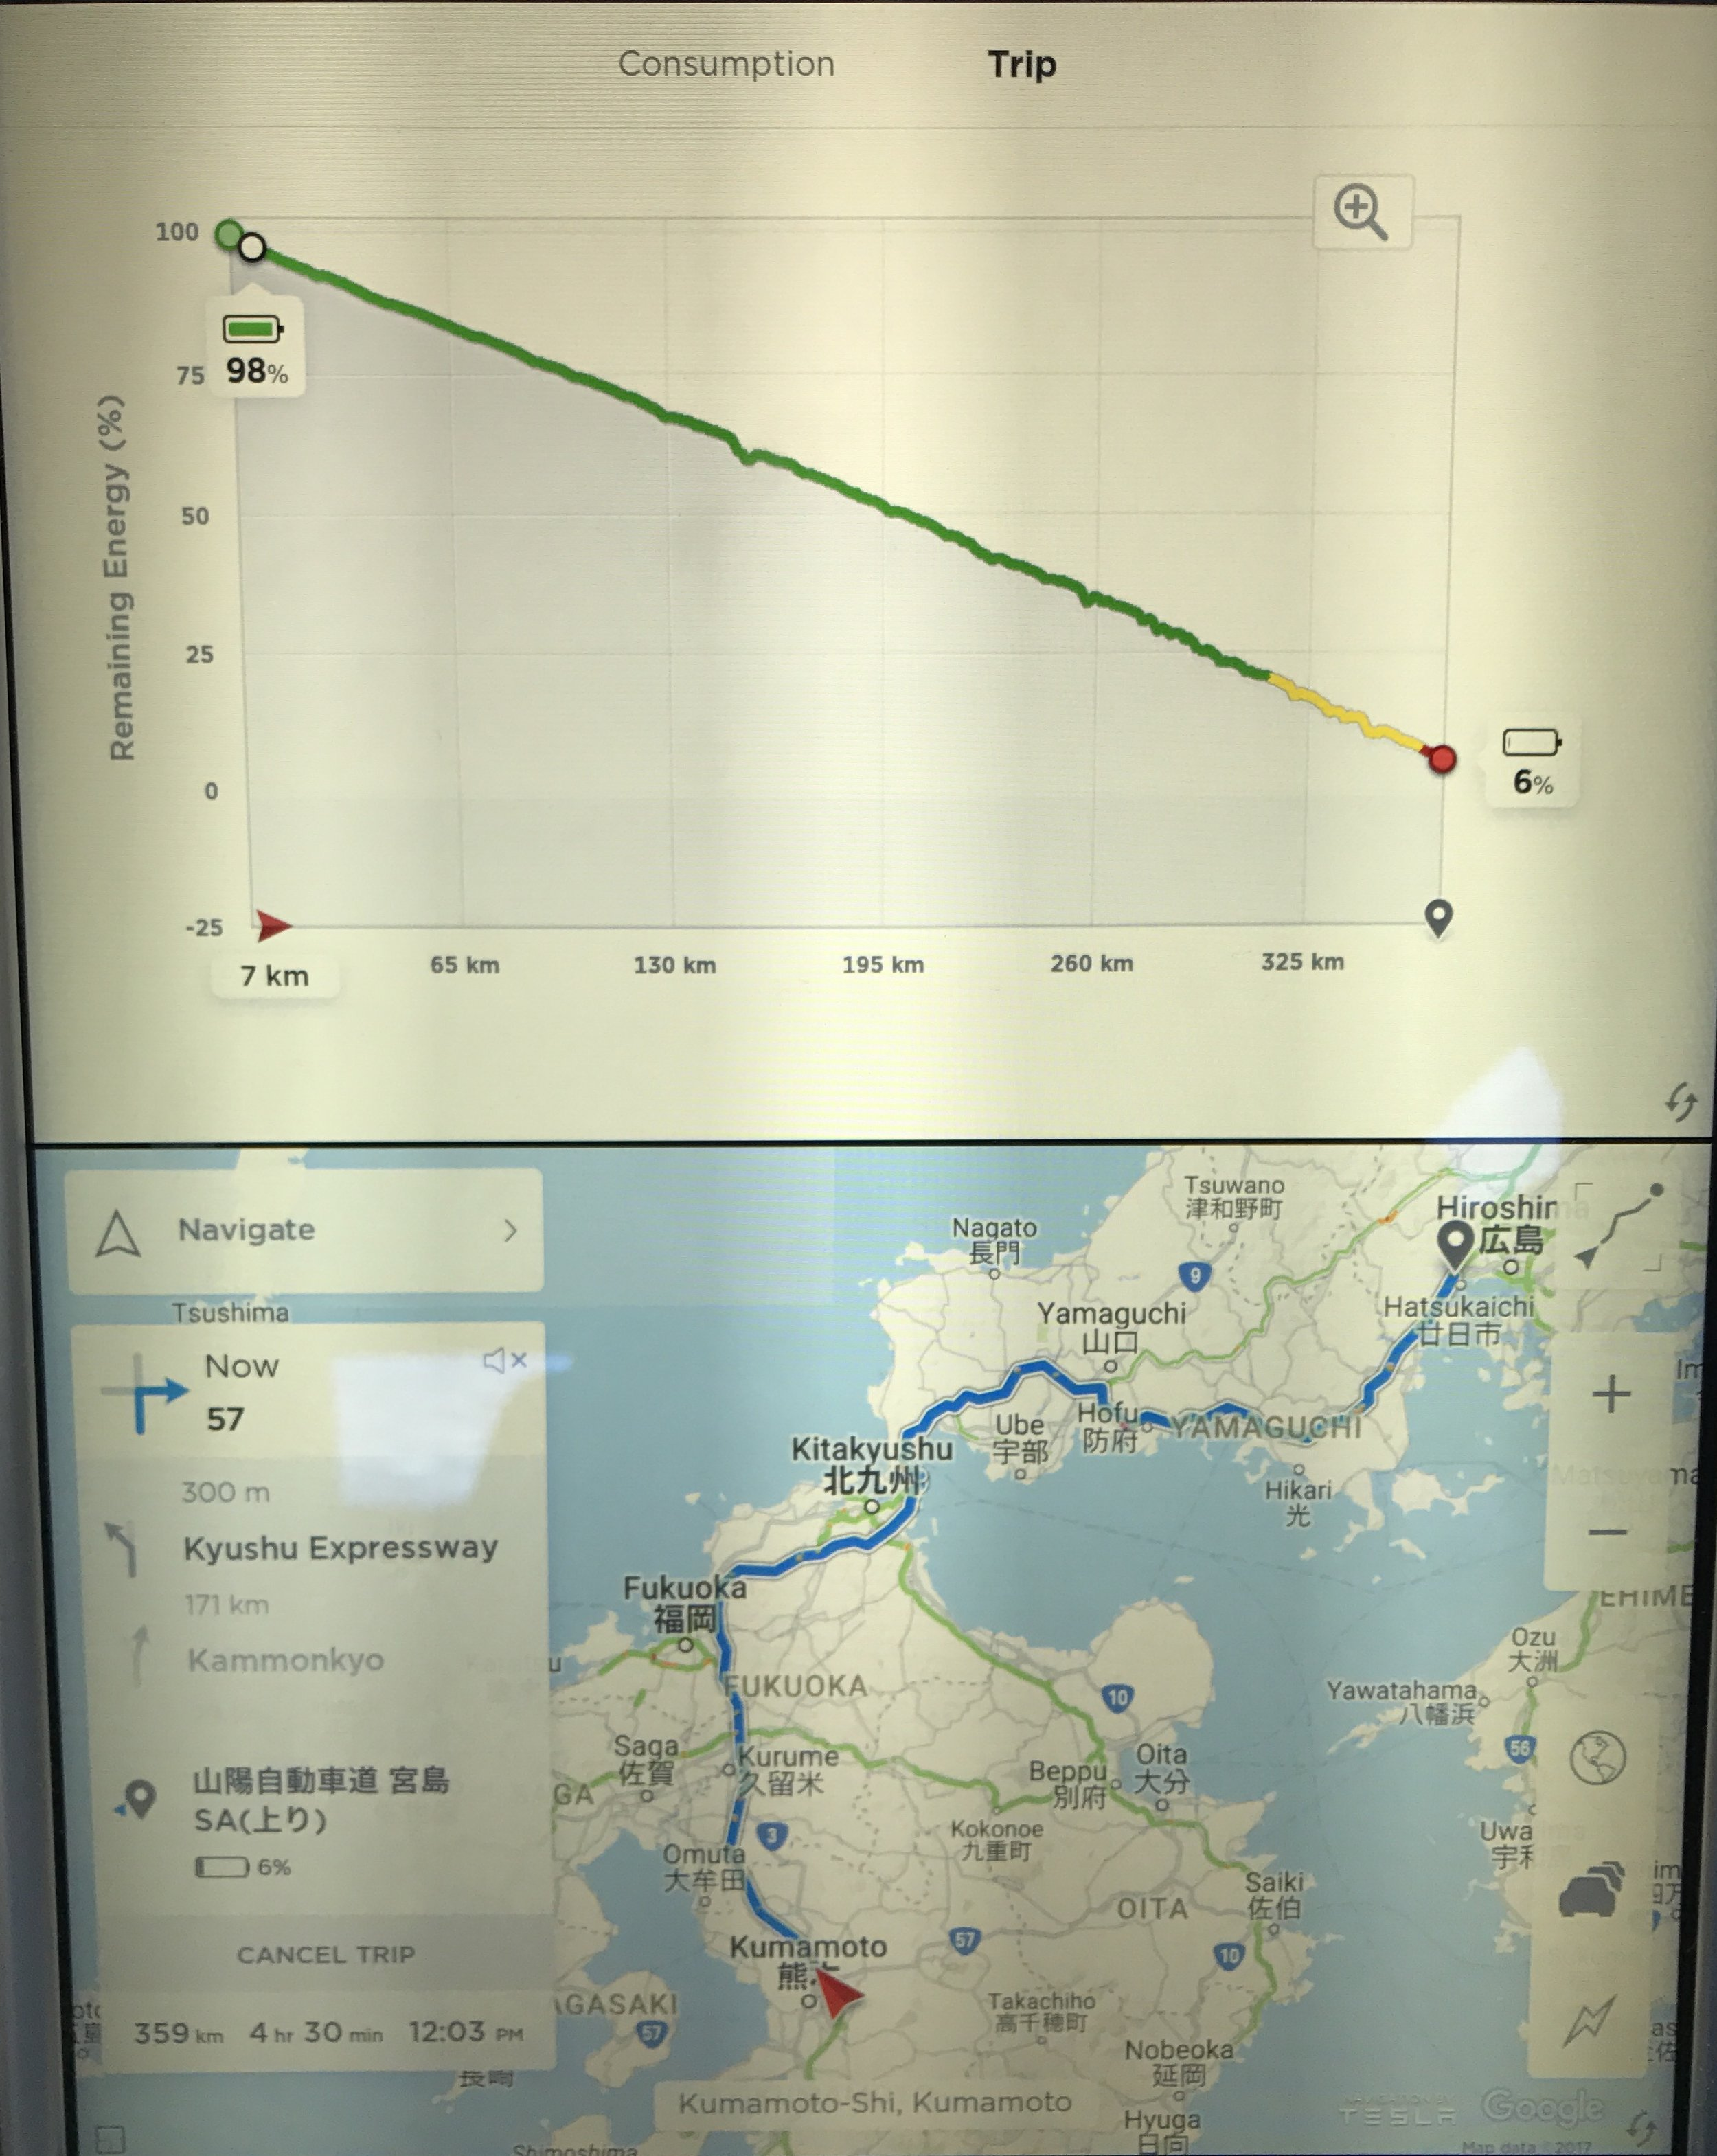 The new (to Japan) Trip feature predicts state of charge (SOC) upon arrival.